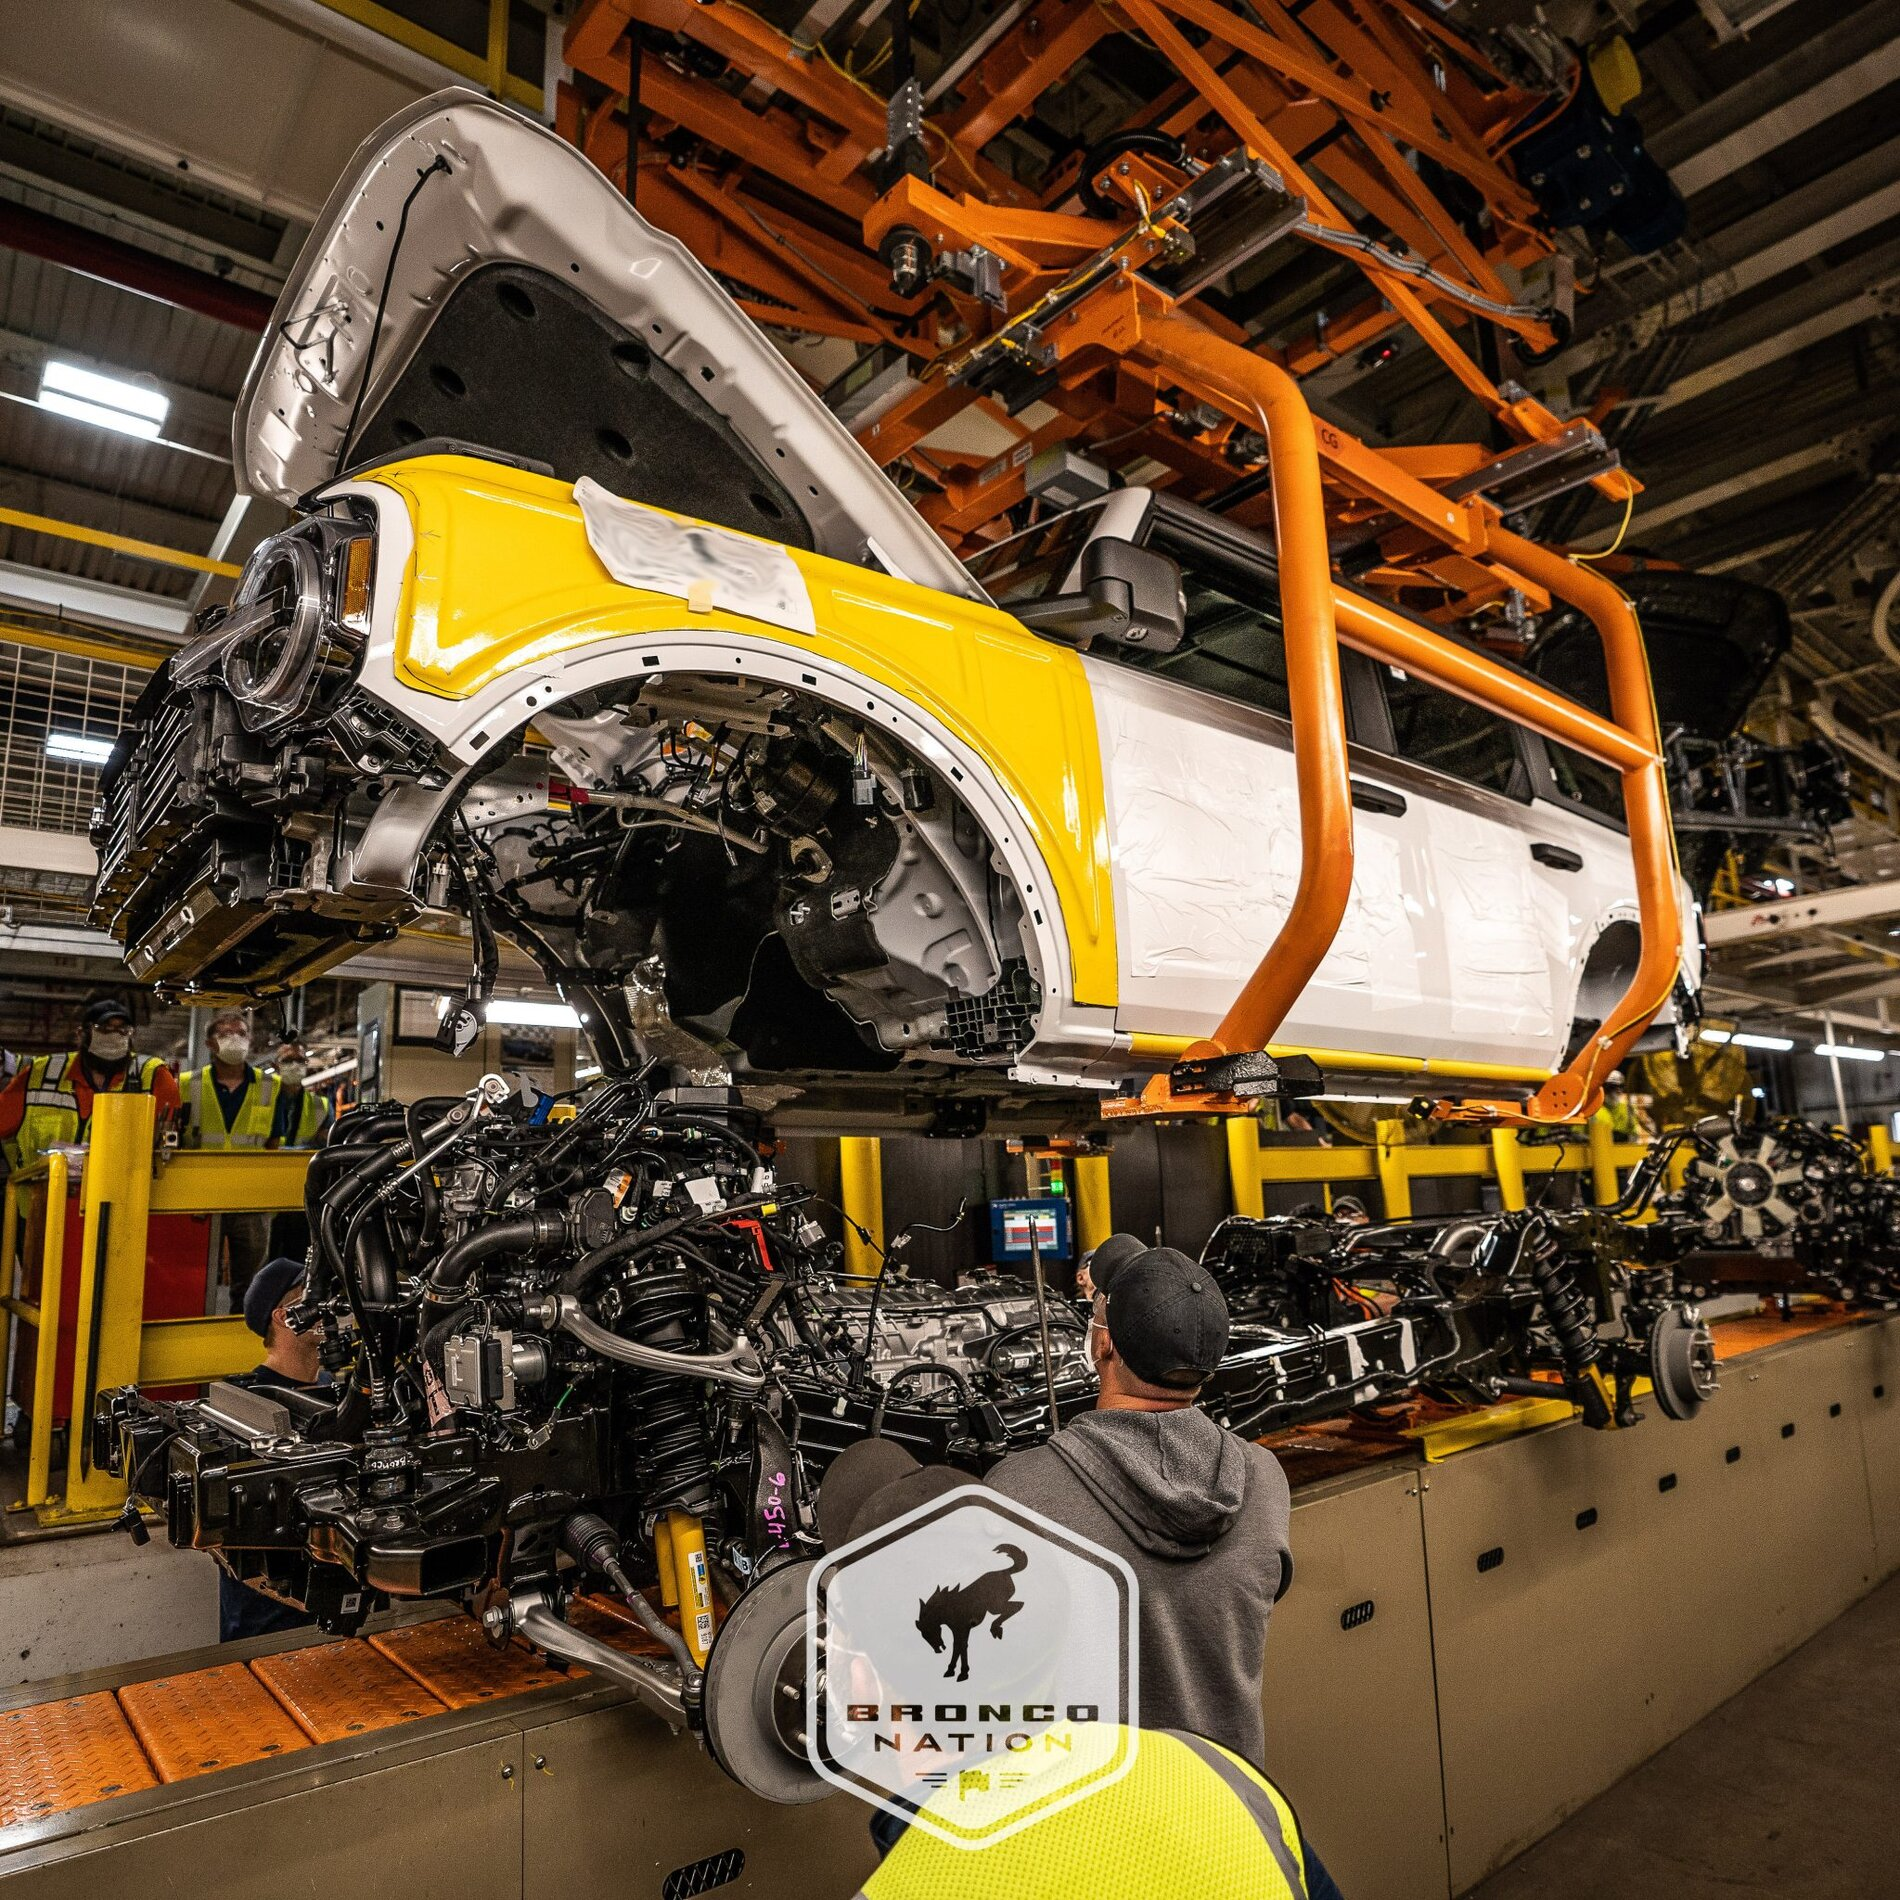 2021 Bronco production line factory 4.jpg